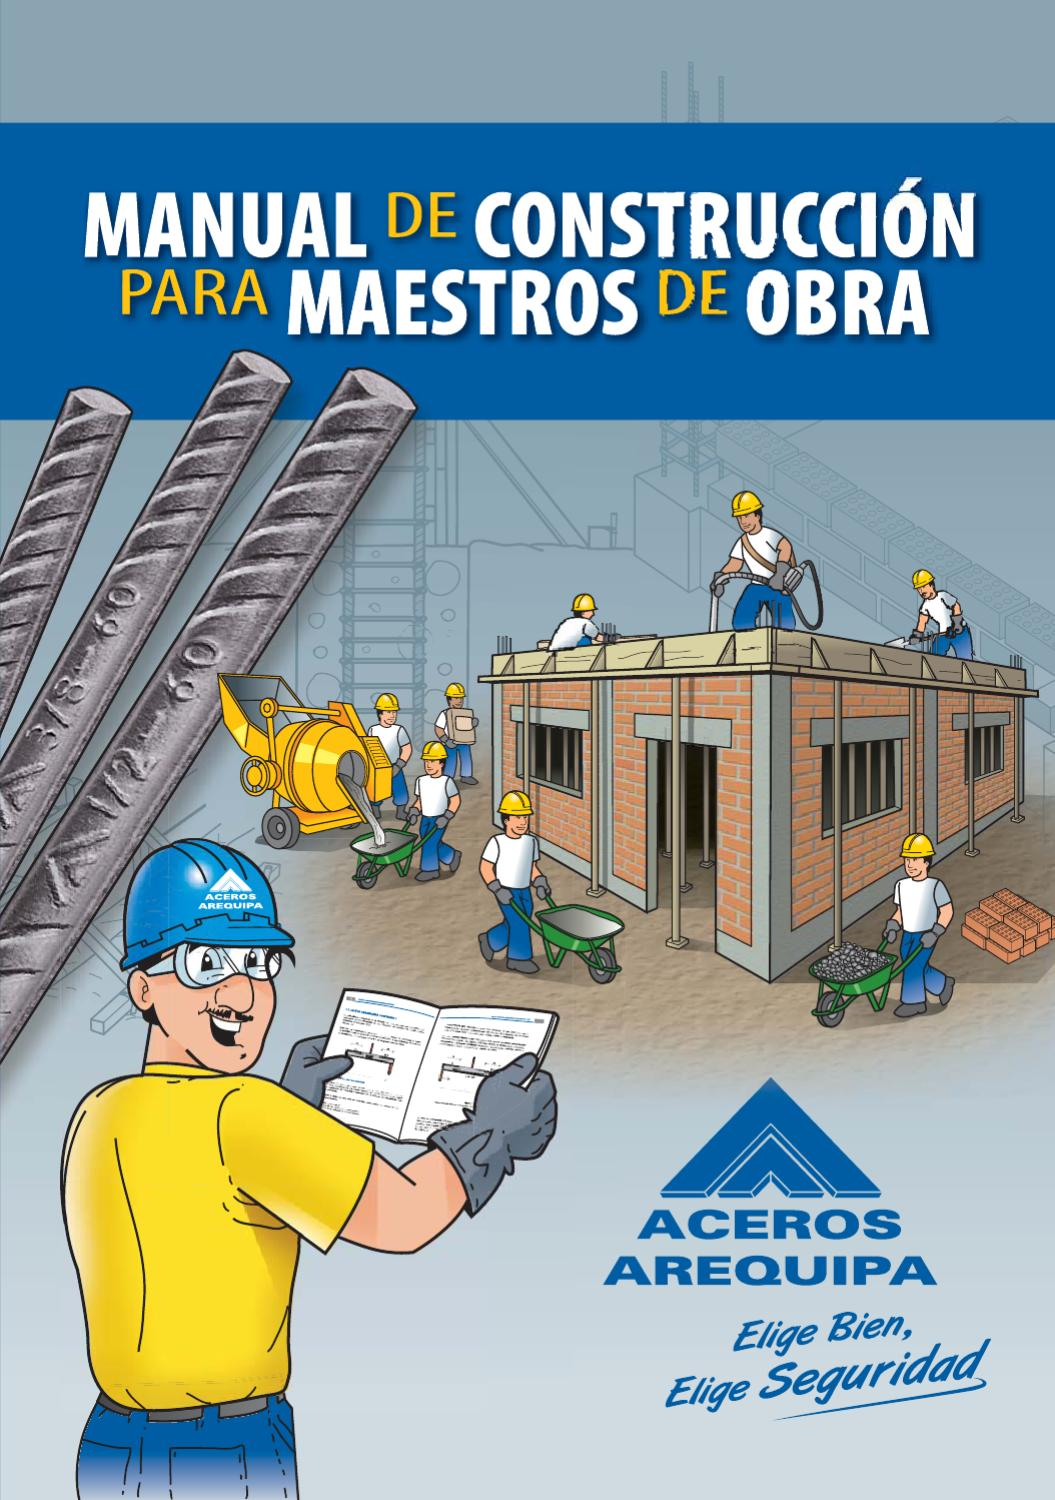 Manual de construcci n para maestros de obra by for Manual de construccion de piscinas pdf